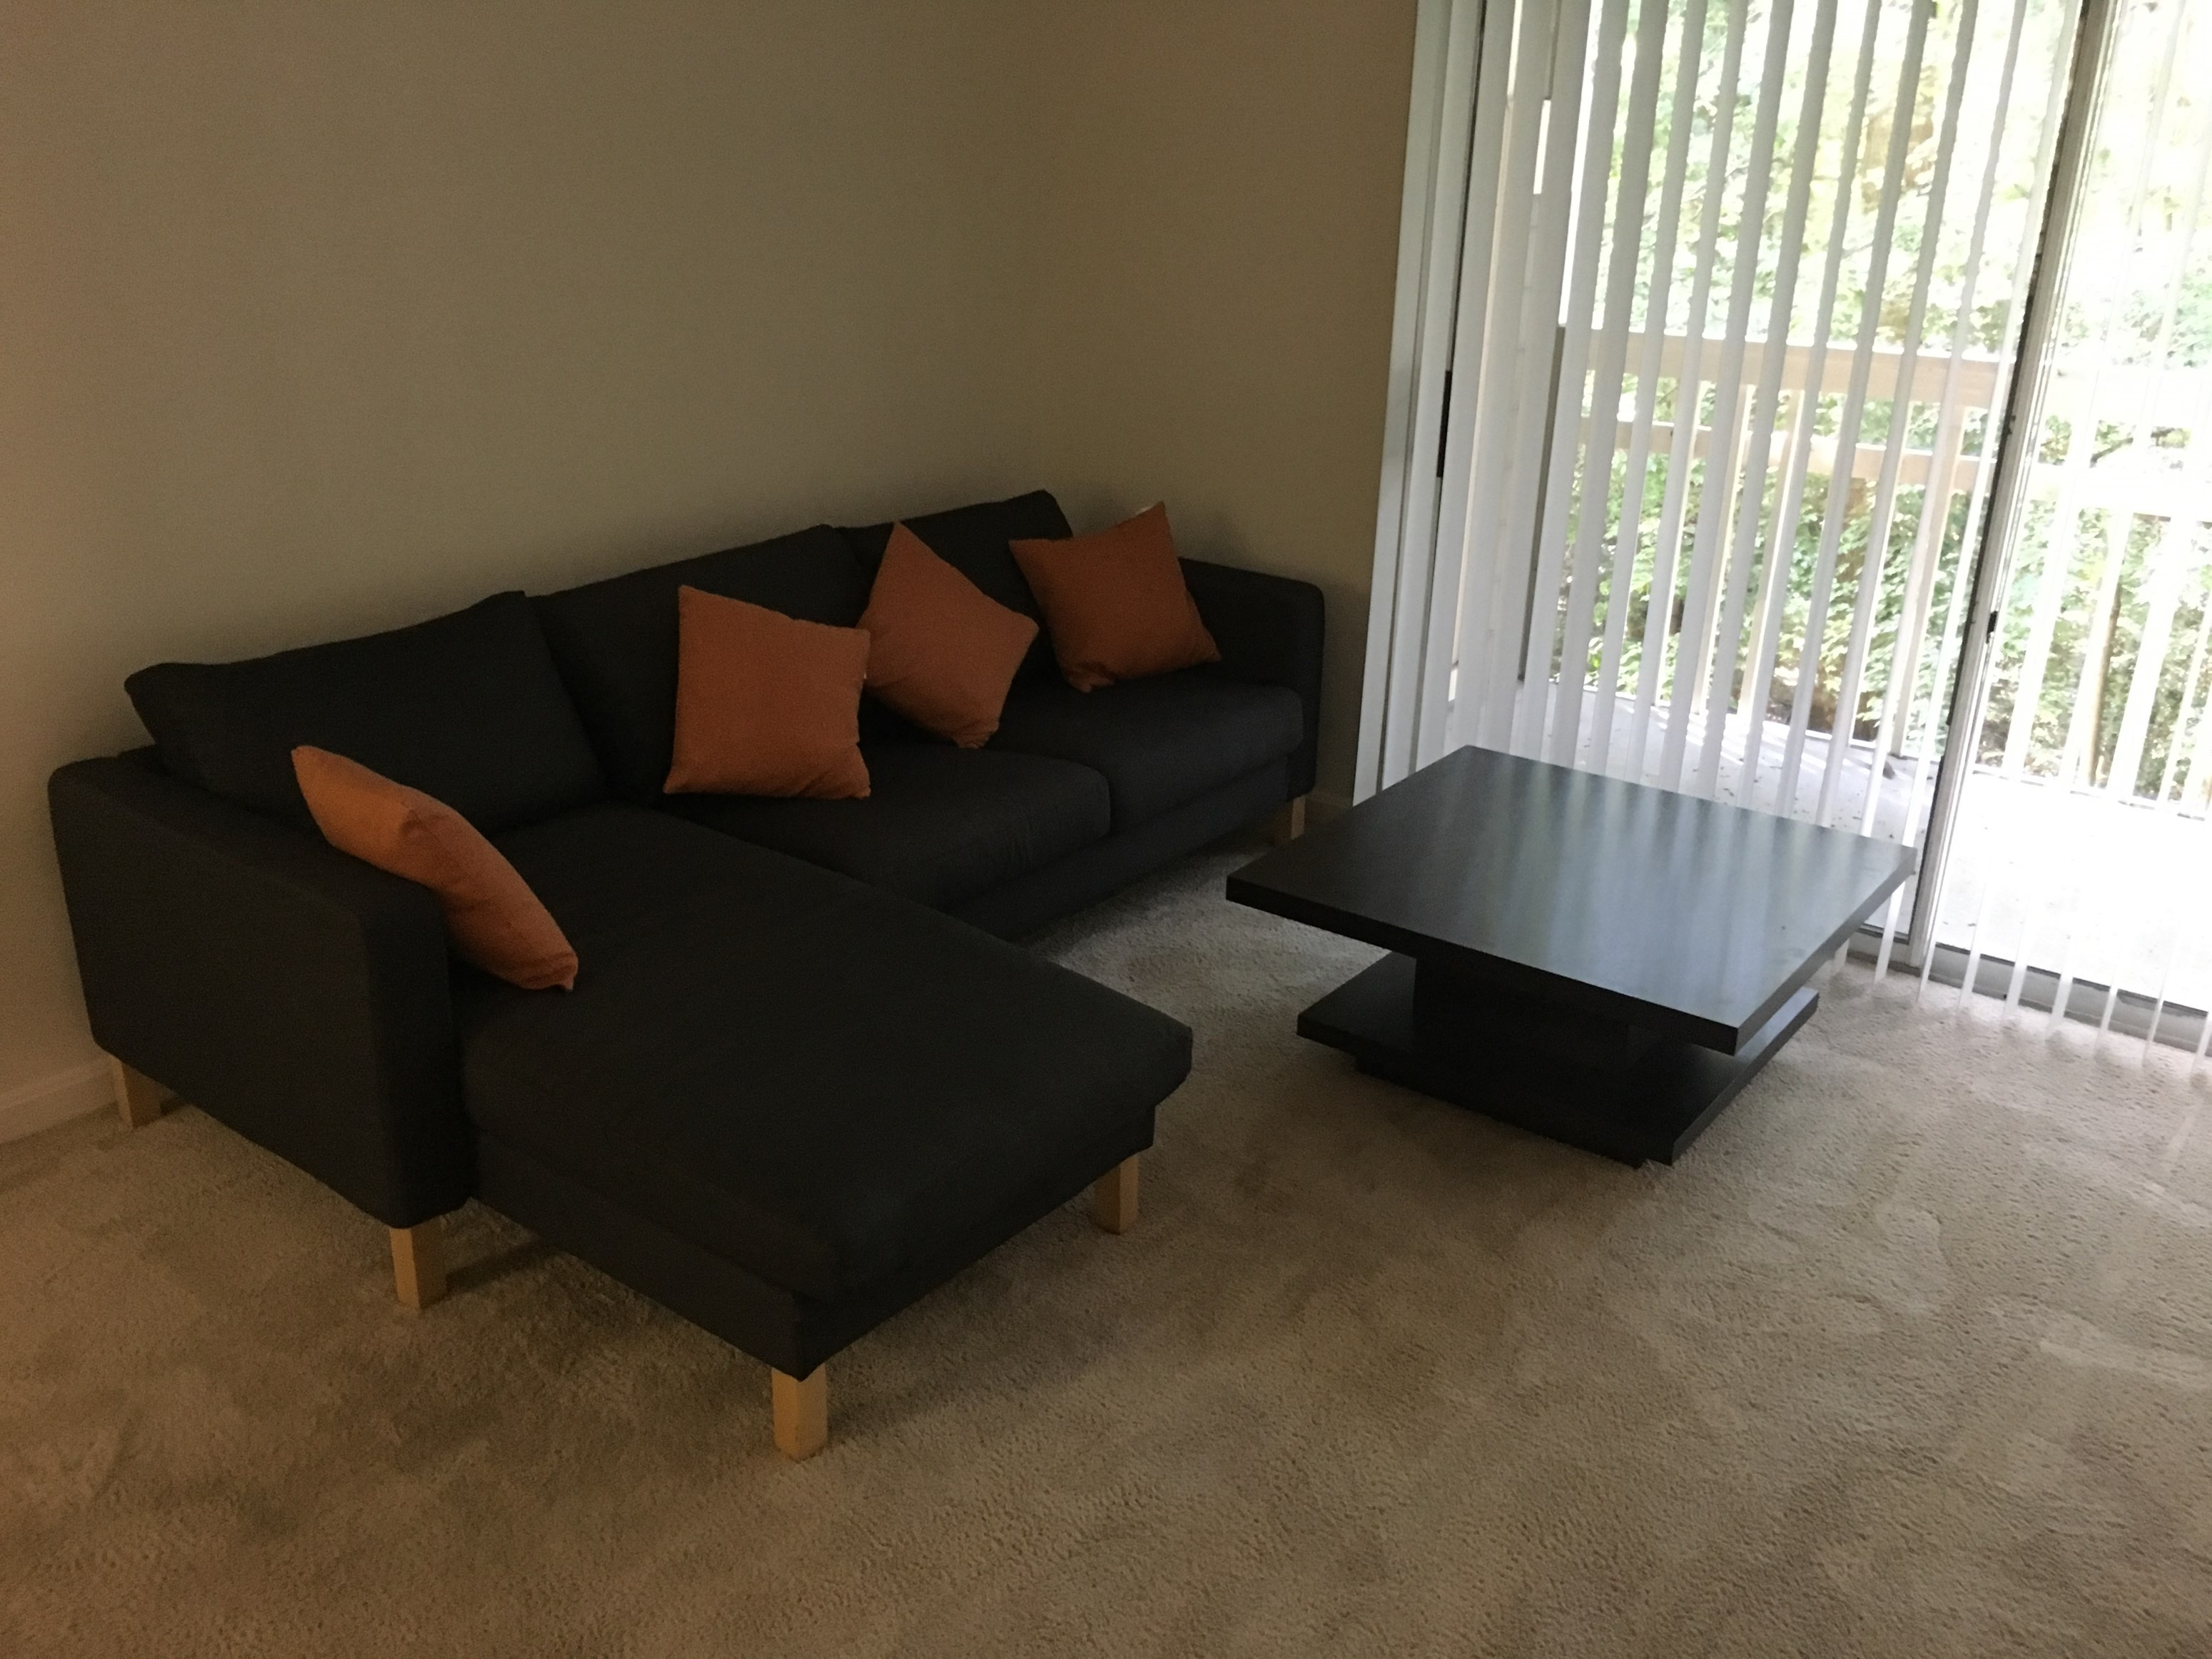 Single Room For Rent In Town House With Attached Bathroom